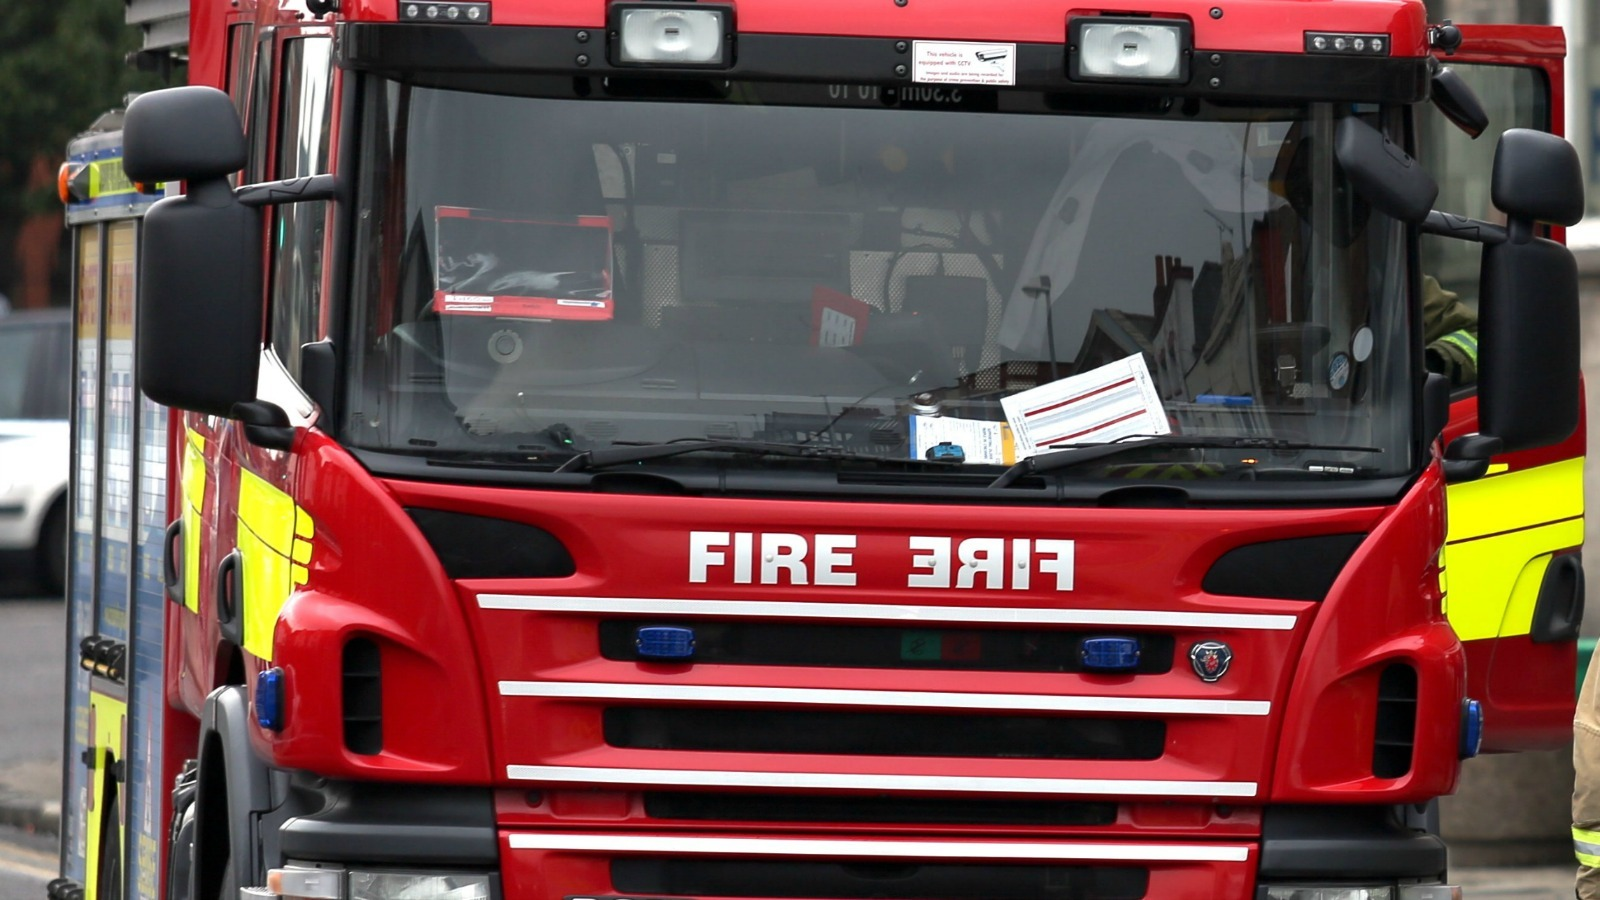 Firefighters tackle blaze in Neston outhouse